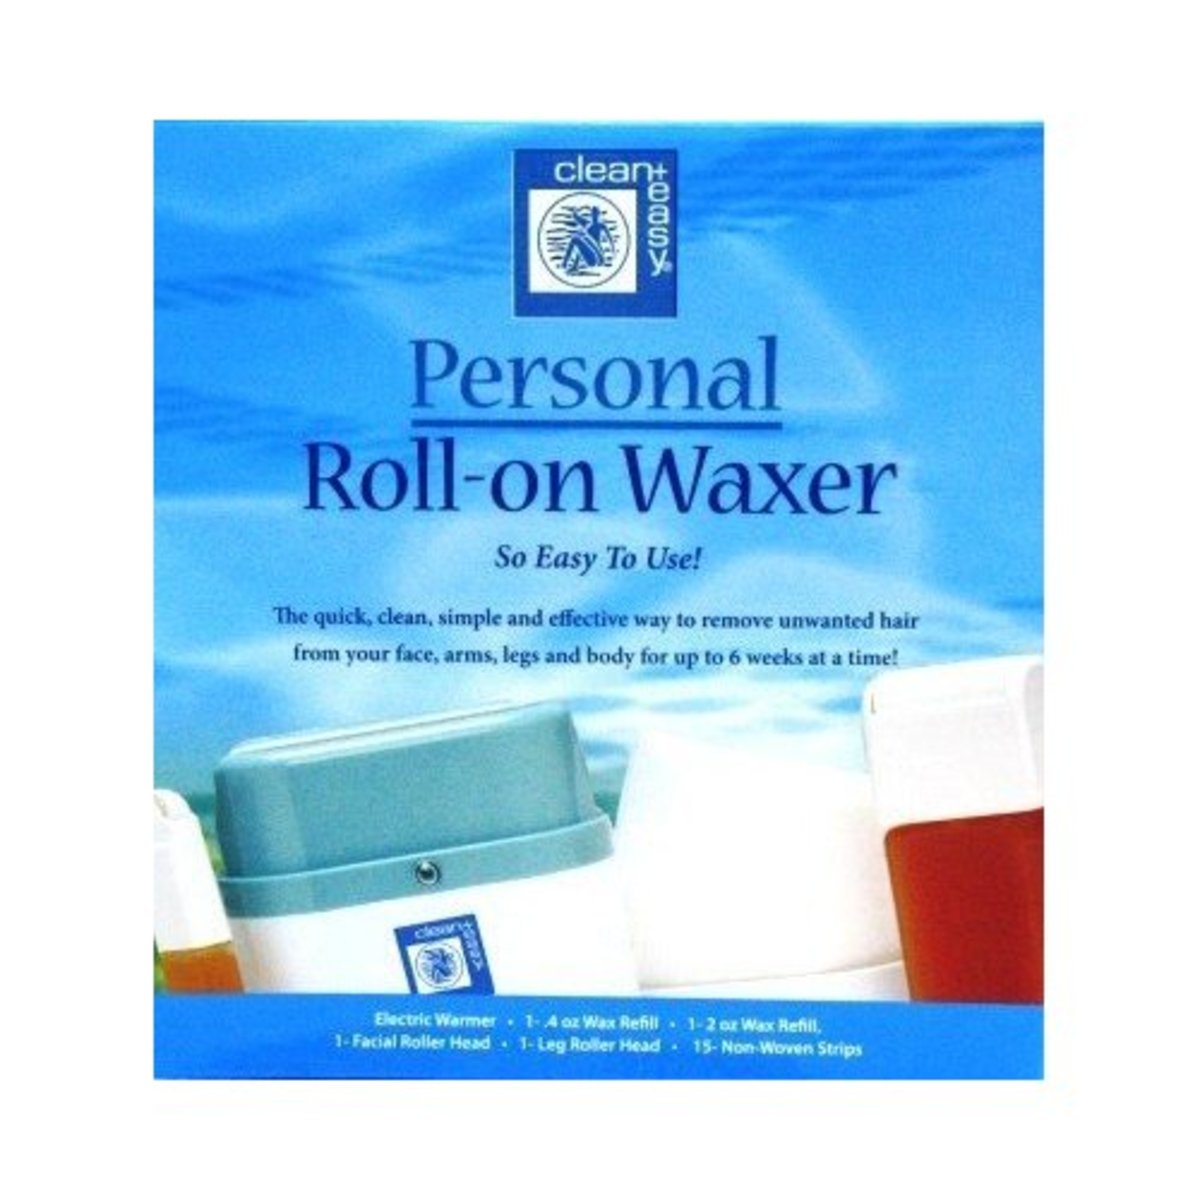 how to clean roll on waxer